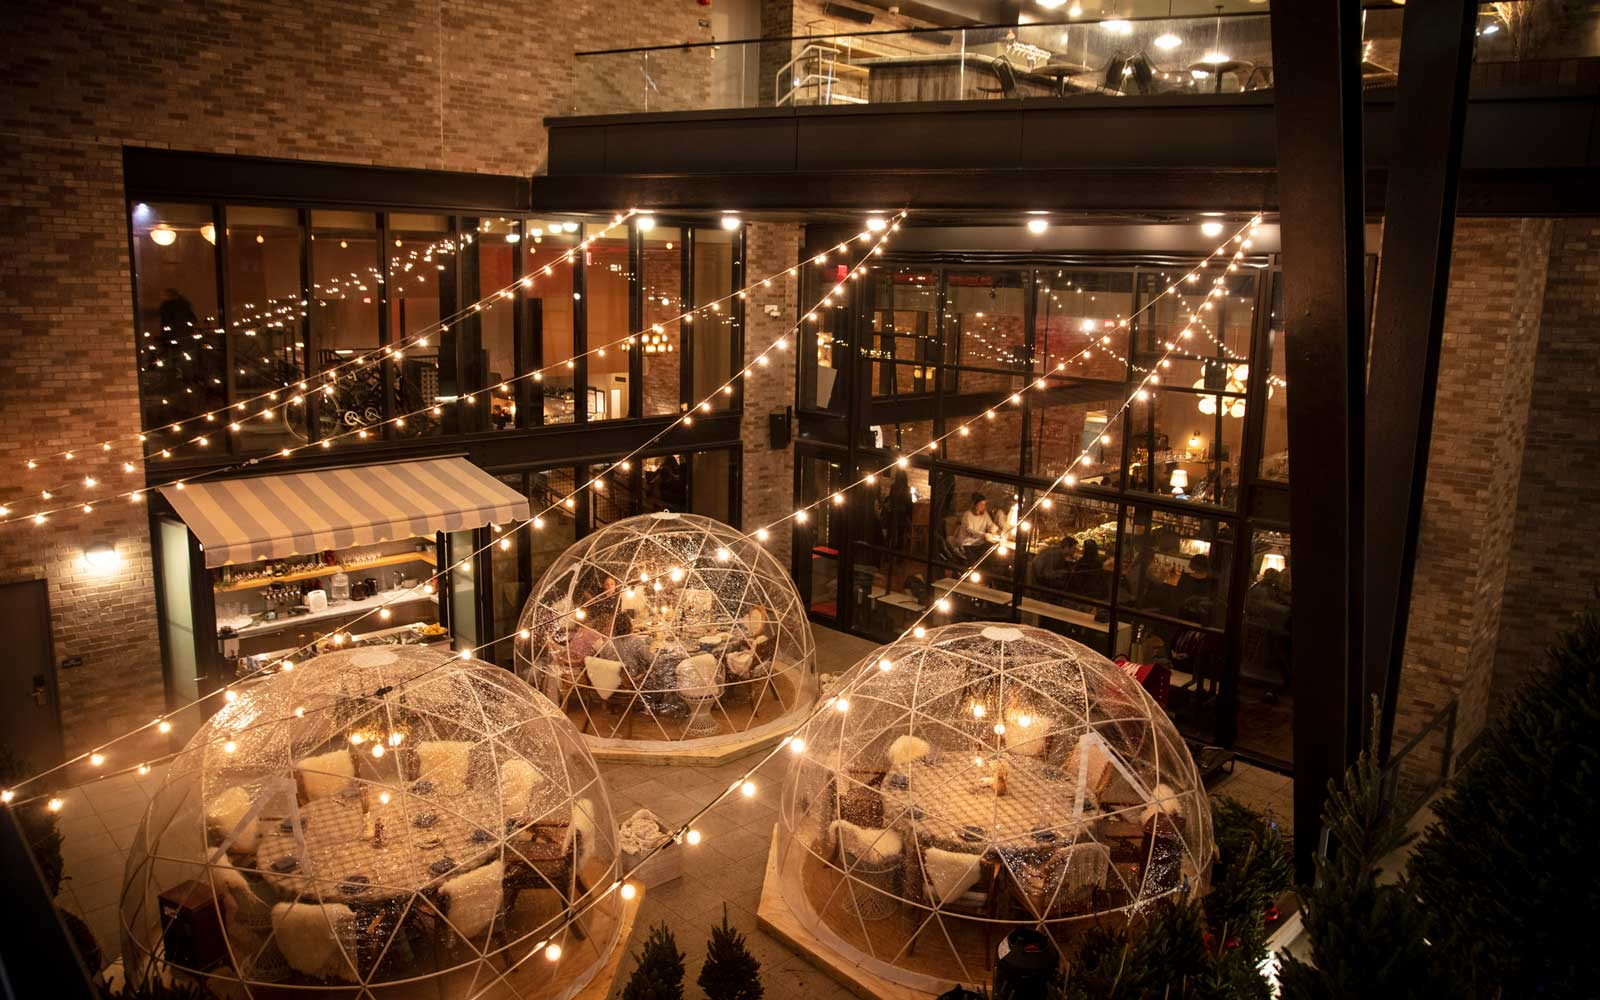 You Can Sip Cocktails in an Igloo Surrounded by Christmas Trees at This Brooklyn Hotel